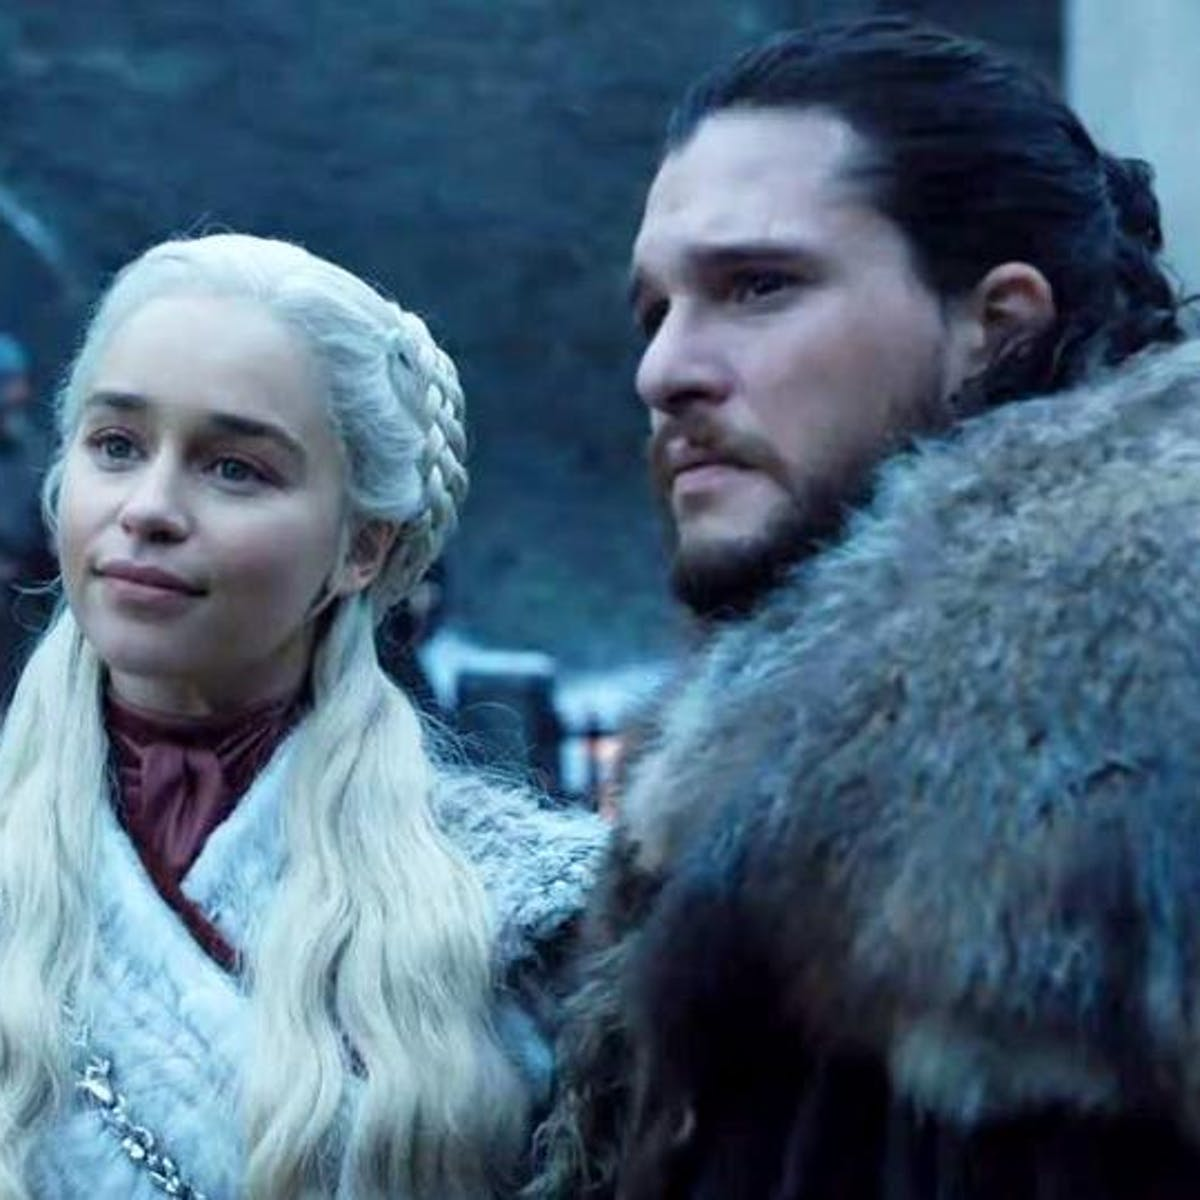 game of thrones season 8 torrent download kickass